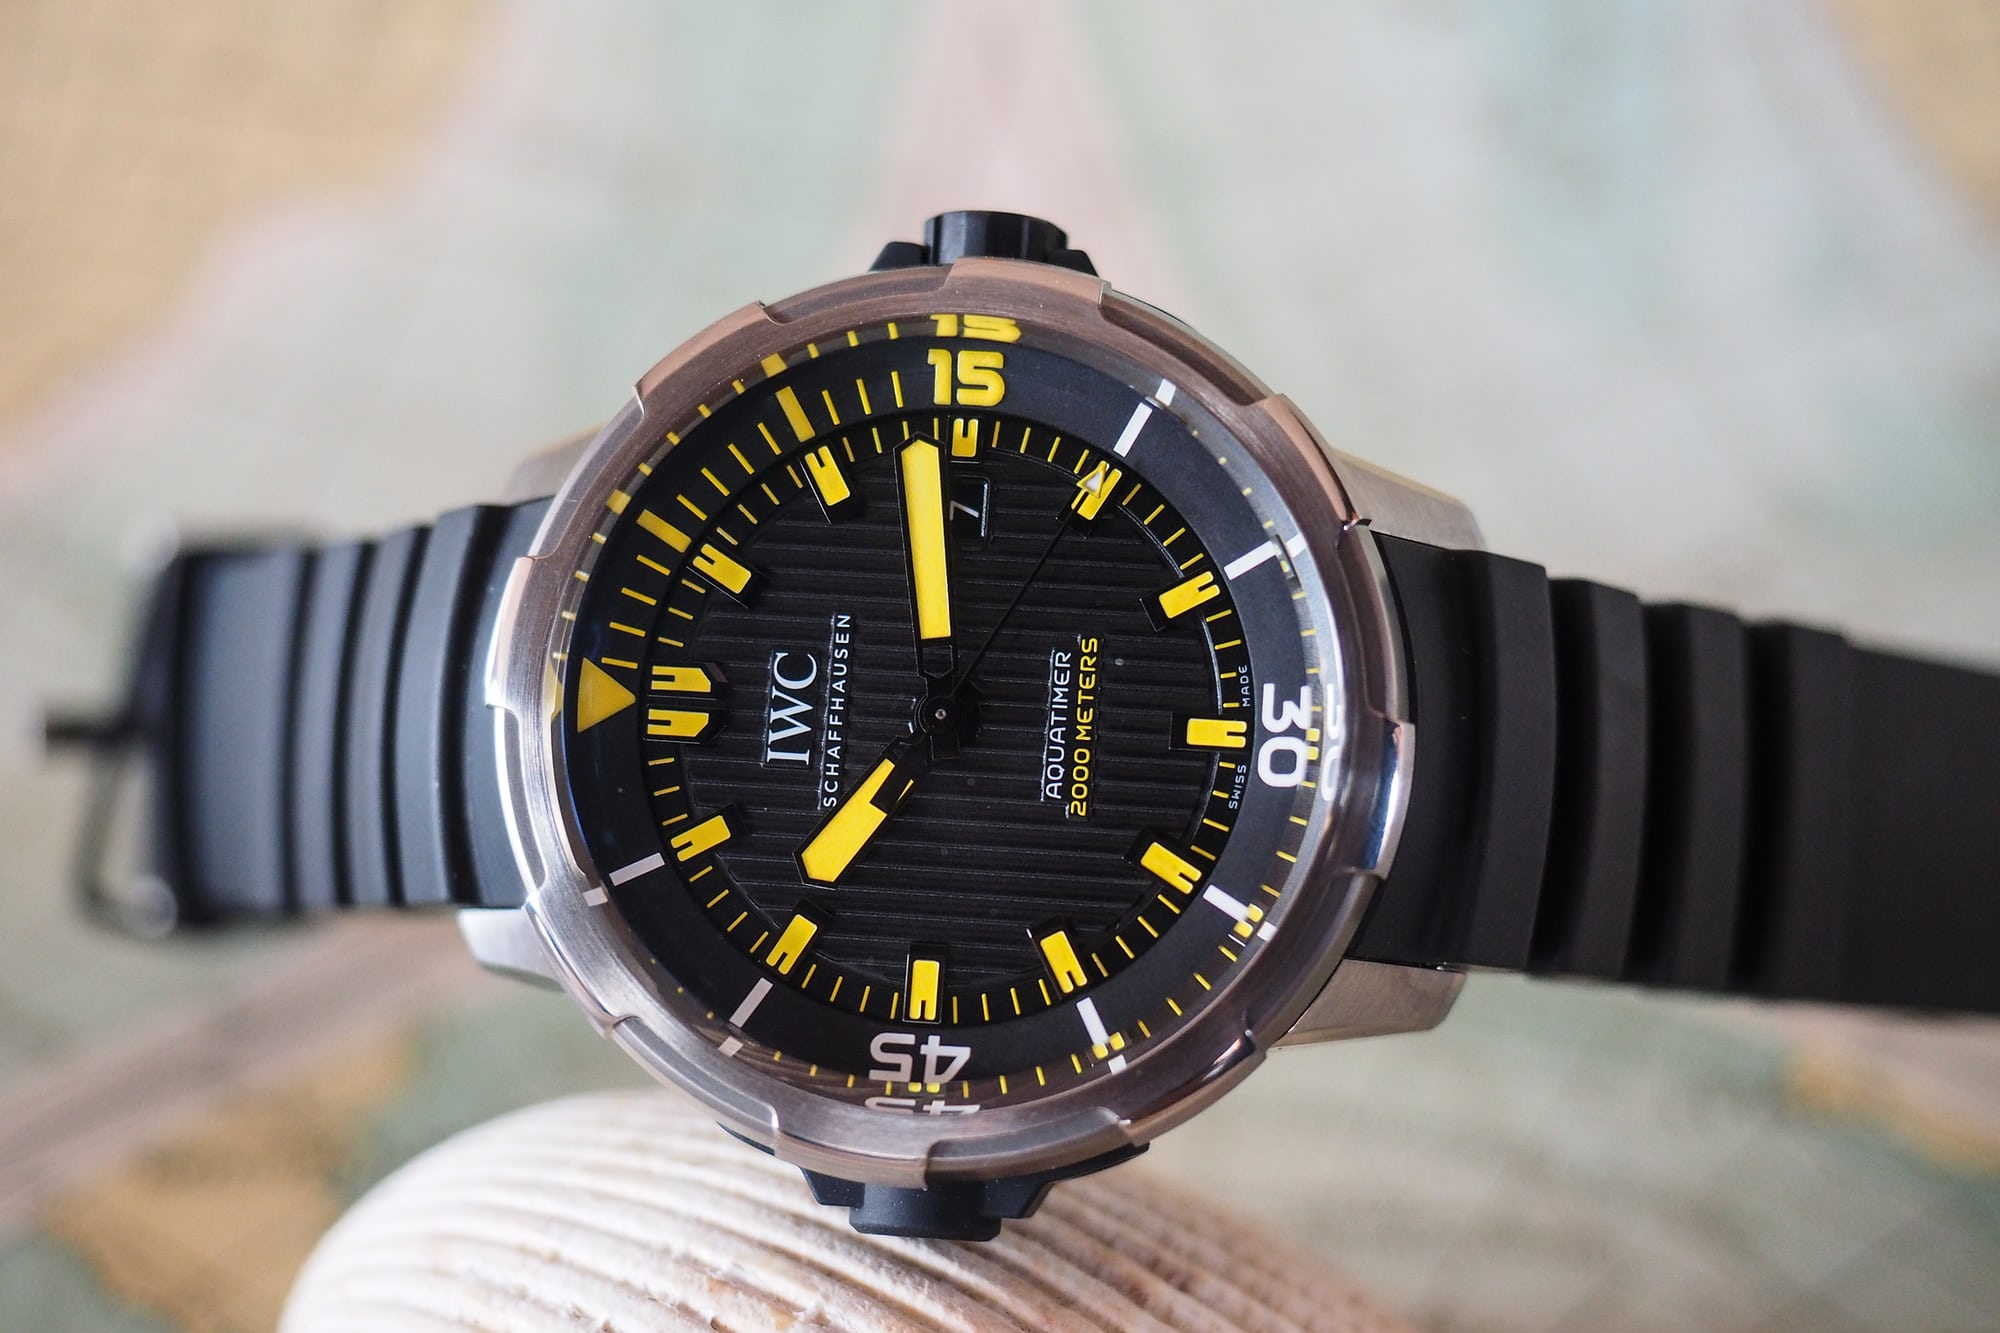 IWC Aquatimer 2000 Technical Perspective: What Dive Watch Depth Ratings Really Mean (And Whether You Can Trust Them) Technical Perspective: What Dive Watch Depth Ratings Really Mean (And Whether You Can Trust Them) P8080008